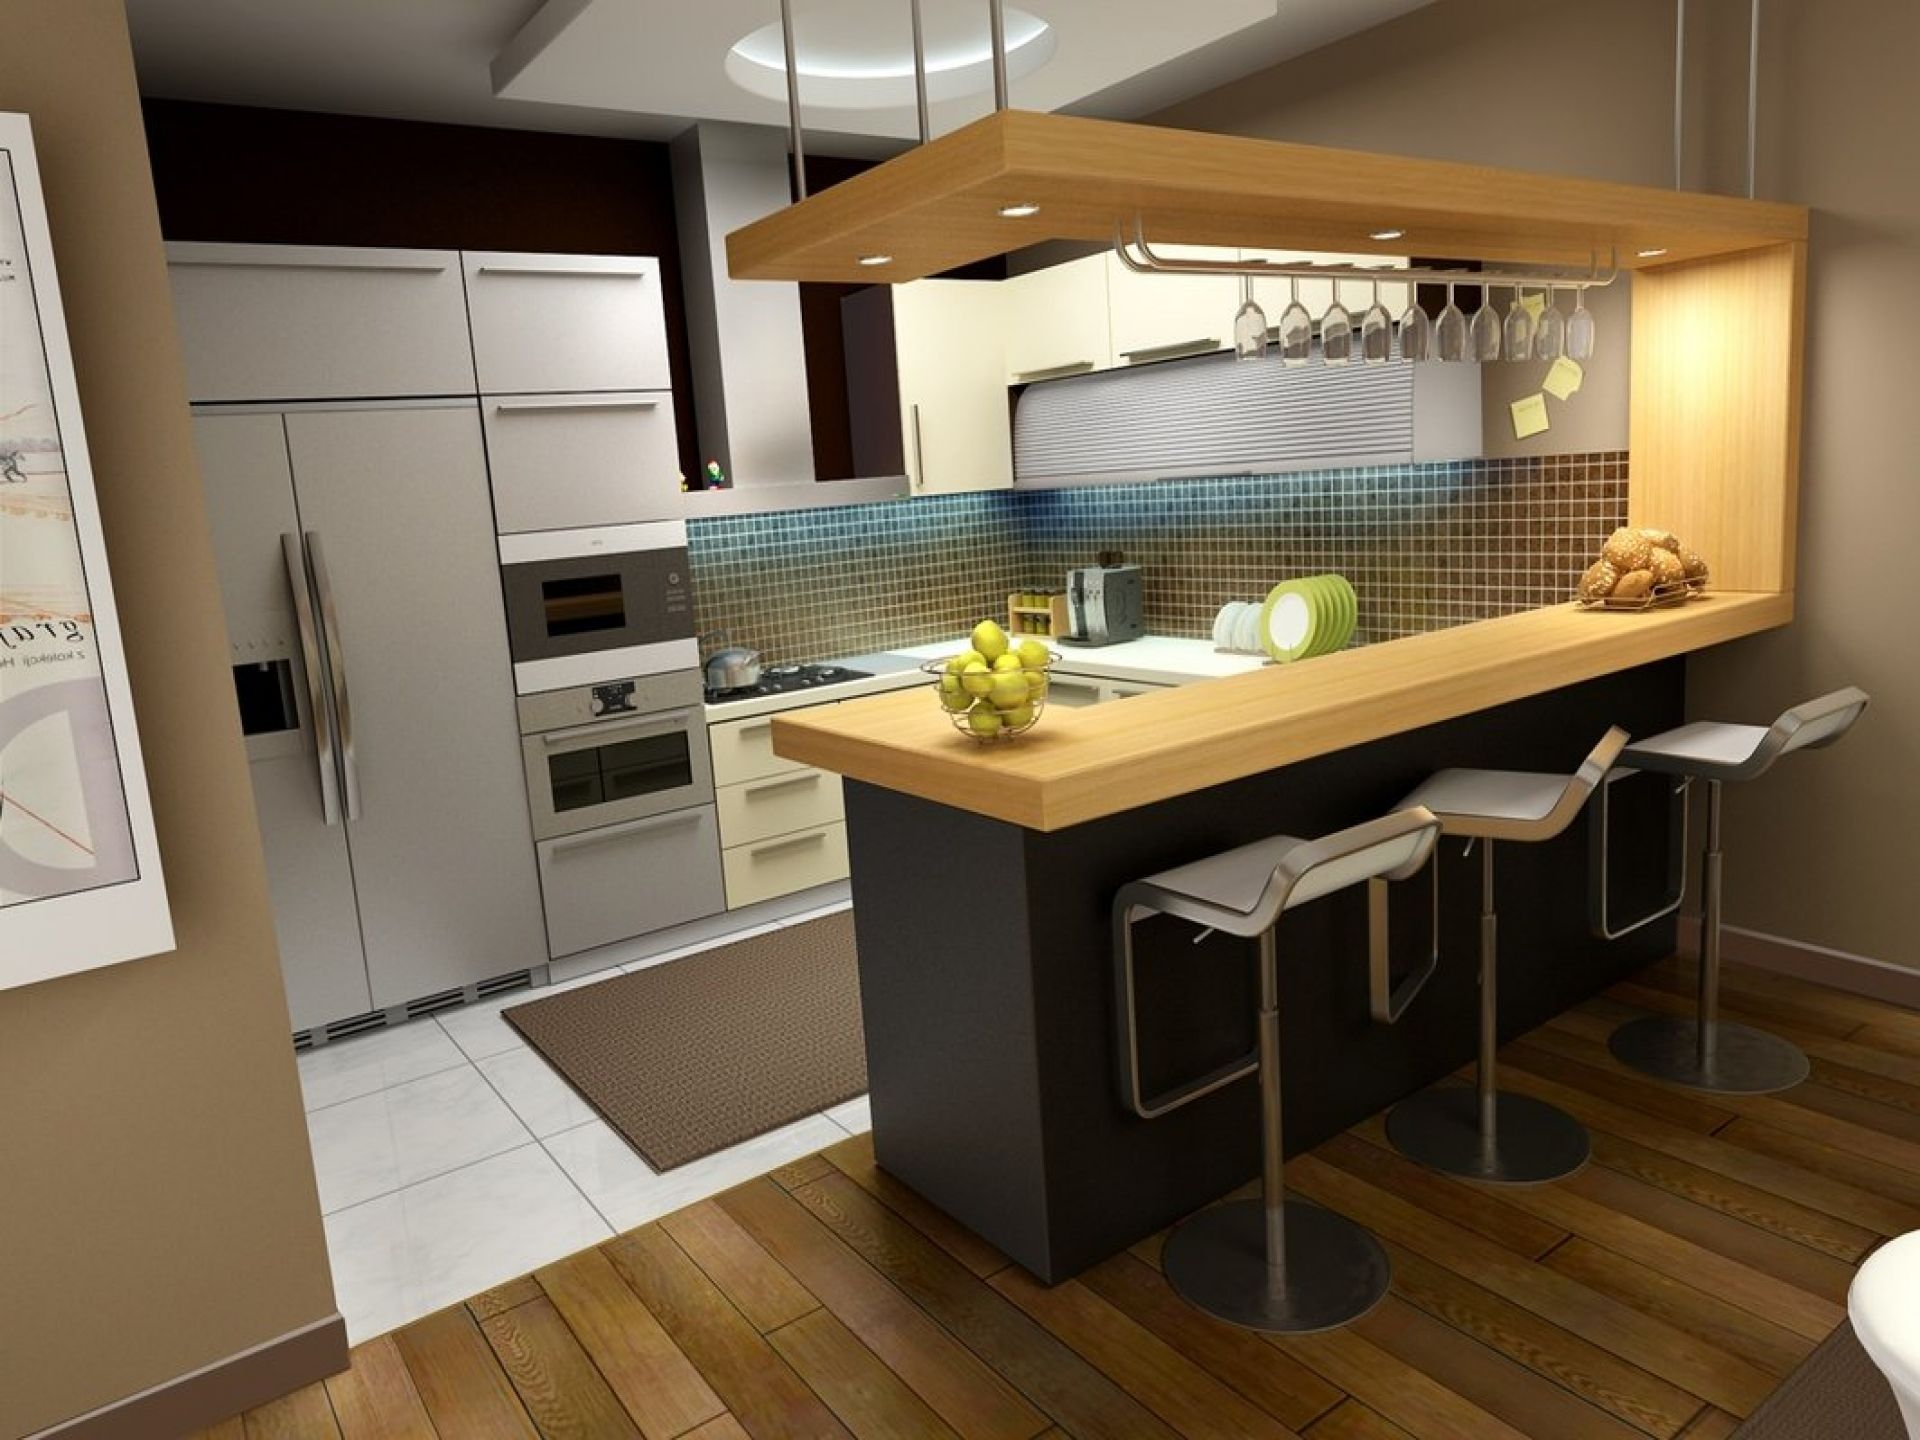 Small #Kitchen Remodeling #Ideas with Wood Visit http://www.suomenlvis.fi/